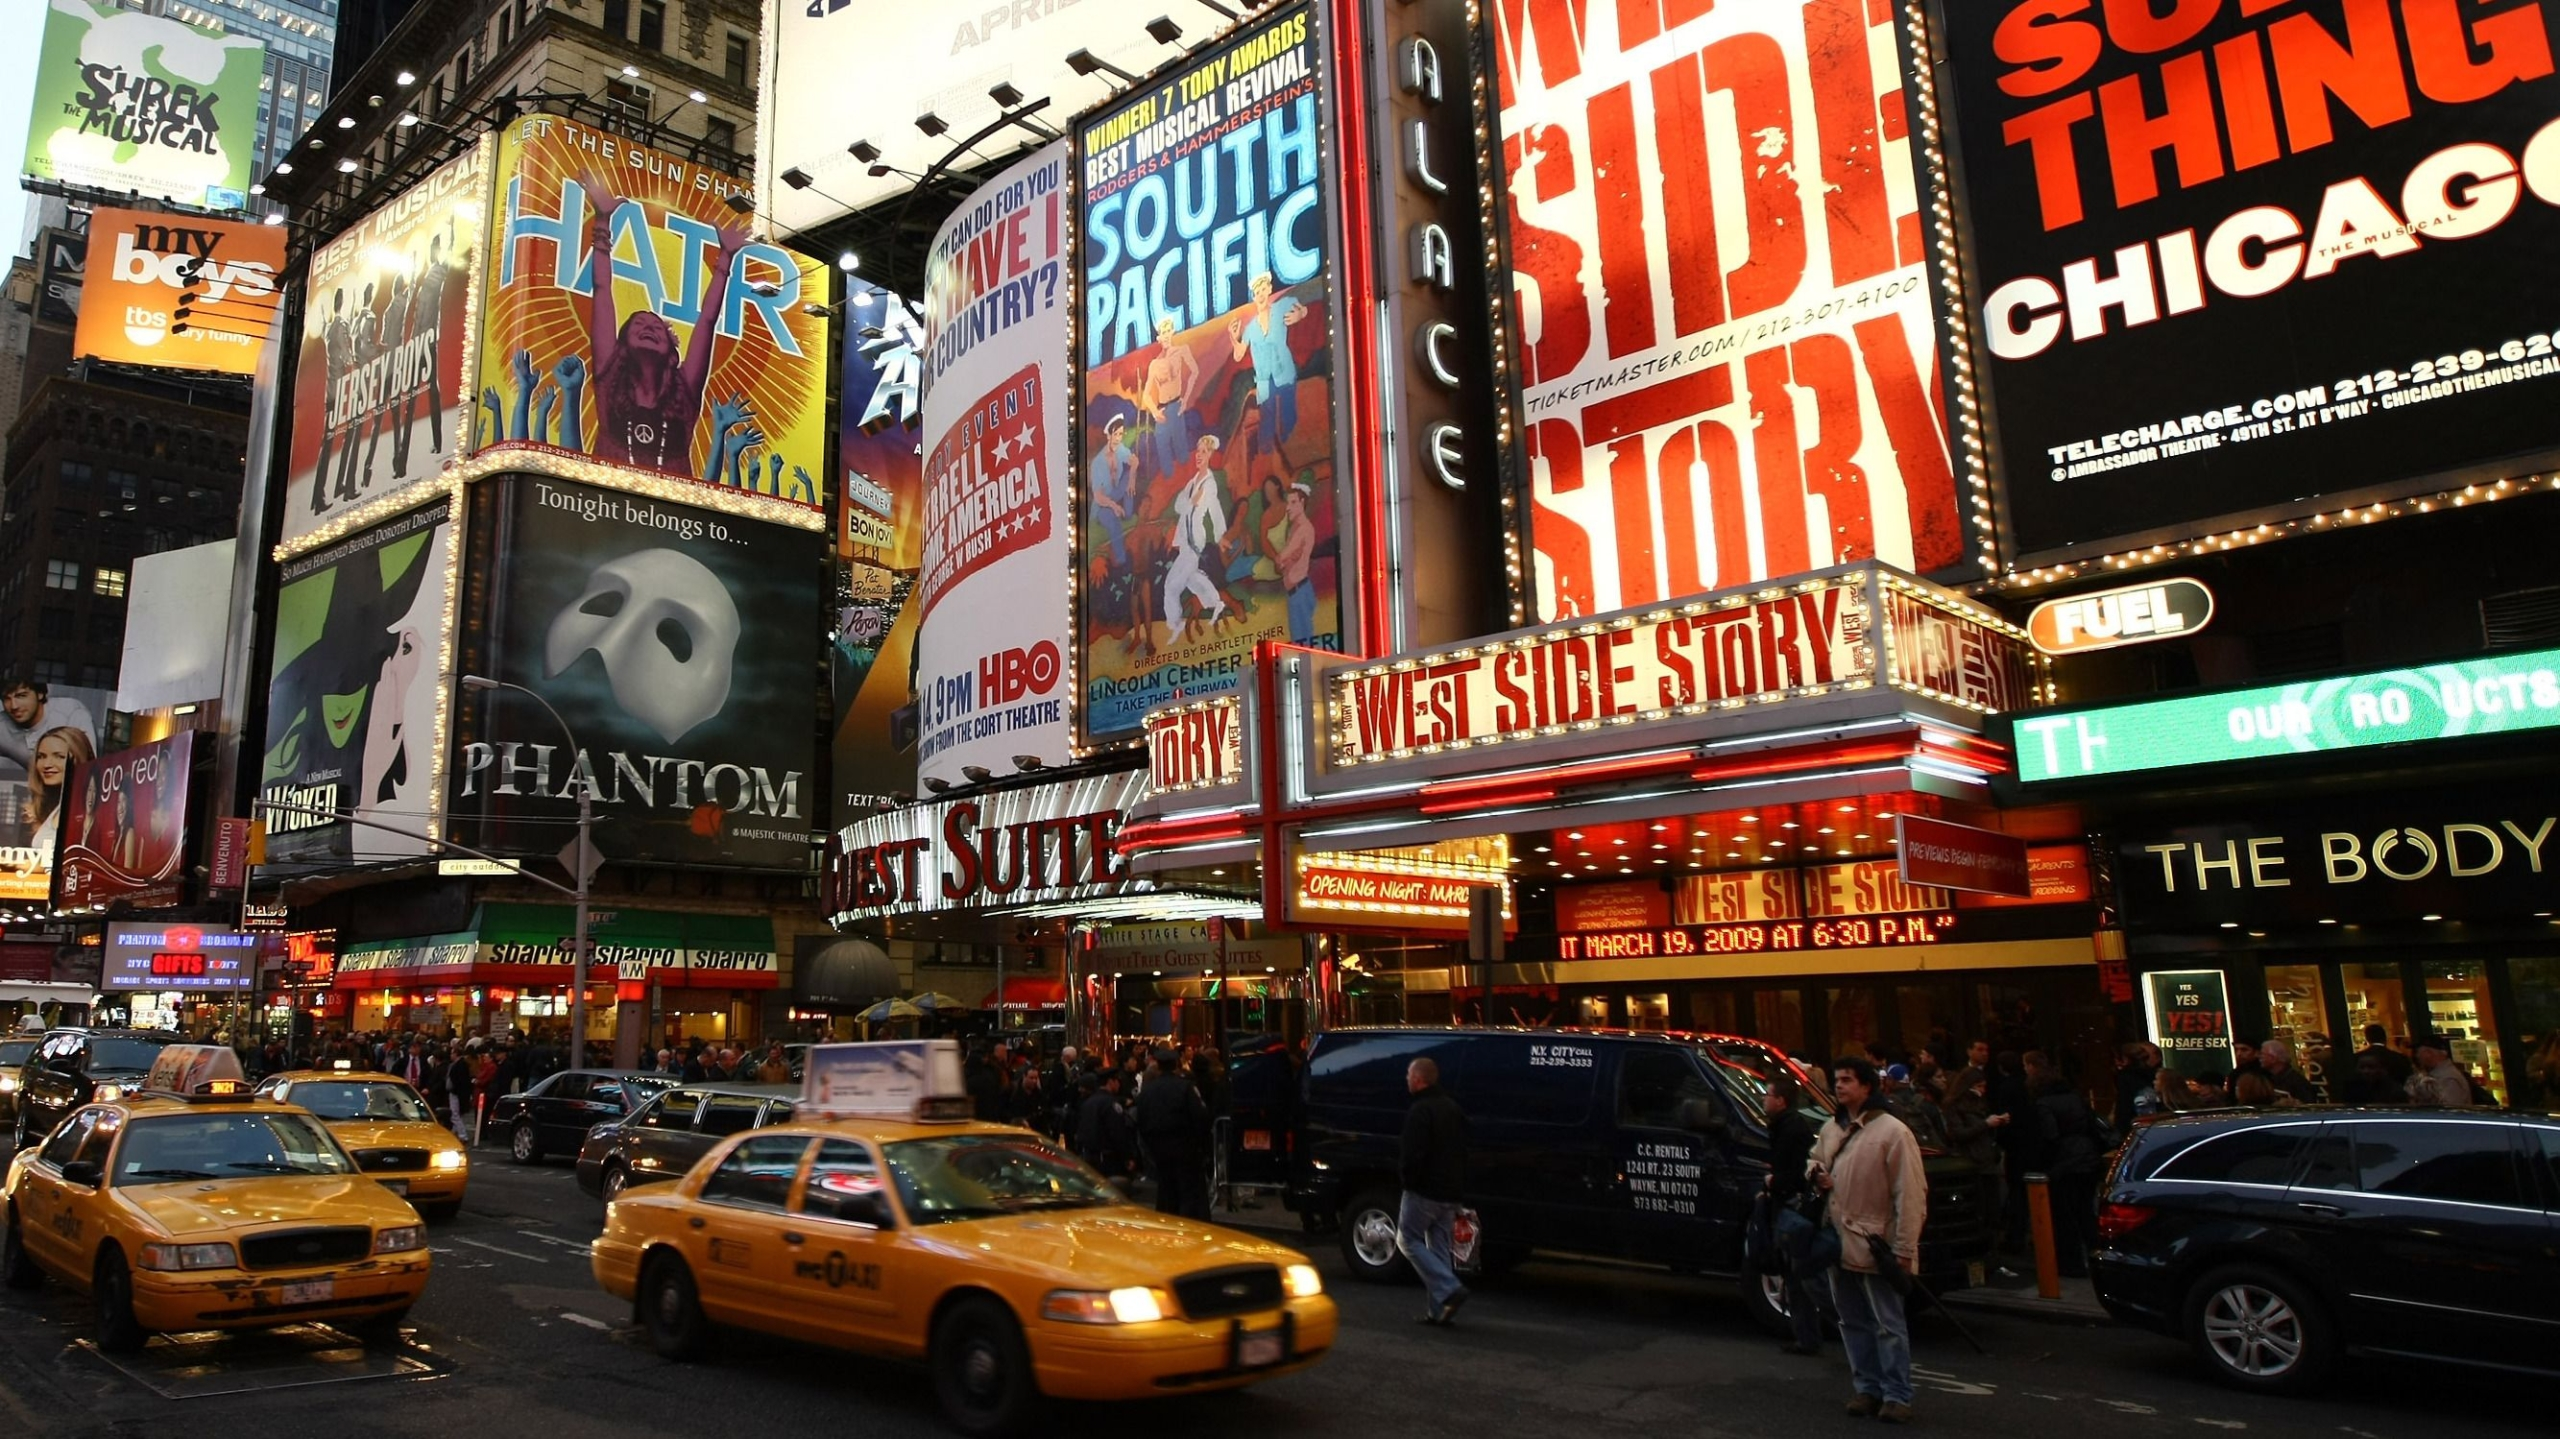 Broadway Wallpaper – Master Wall Murals For Any Room in Your Home